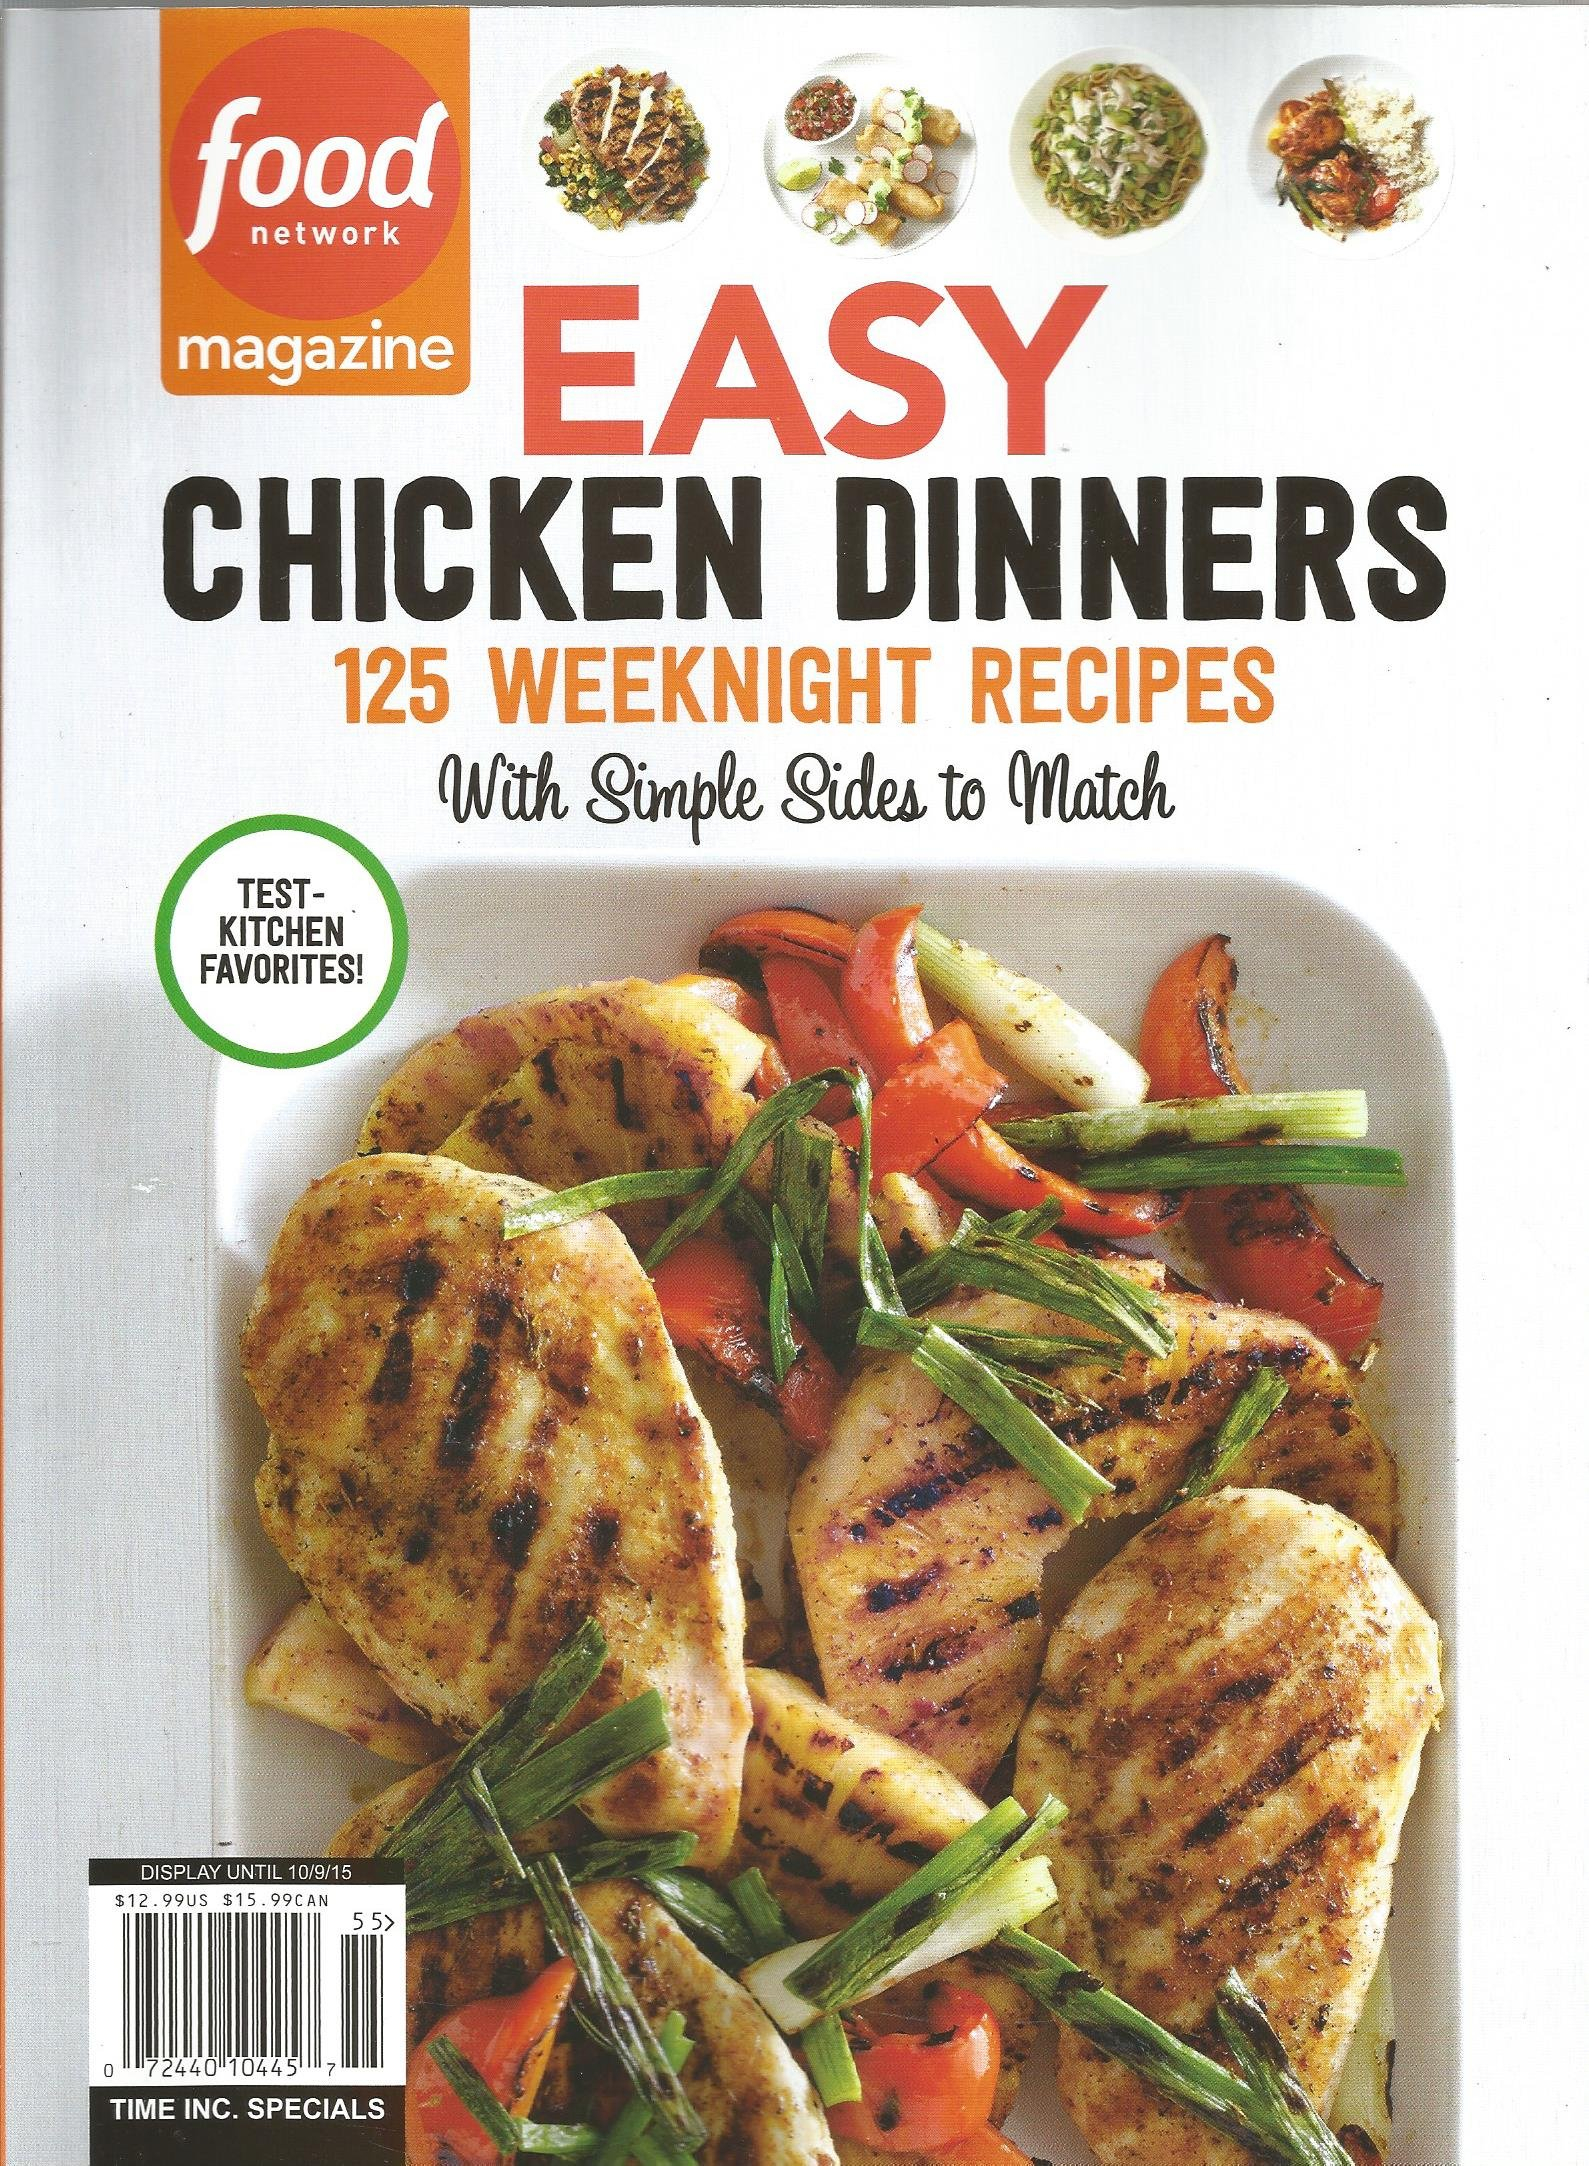 Easy chicken dinners food network magazine various amazon easy chicken dinners food network magazine various amazon books forumfinder Gallery